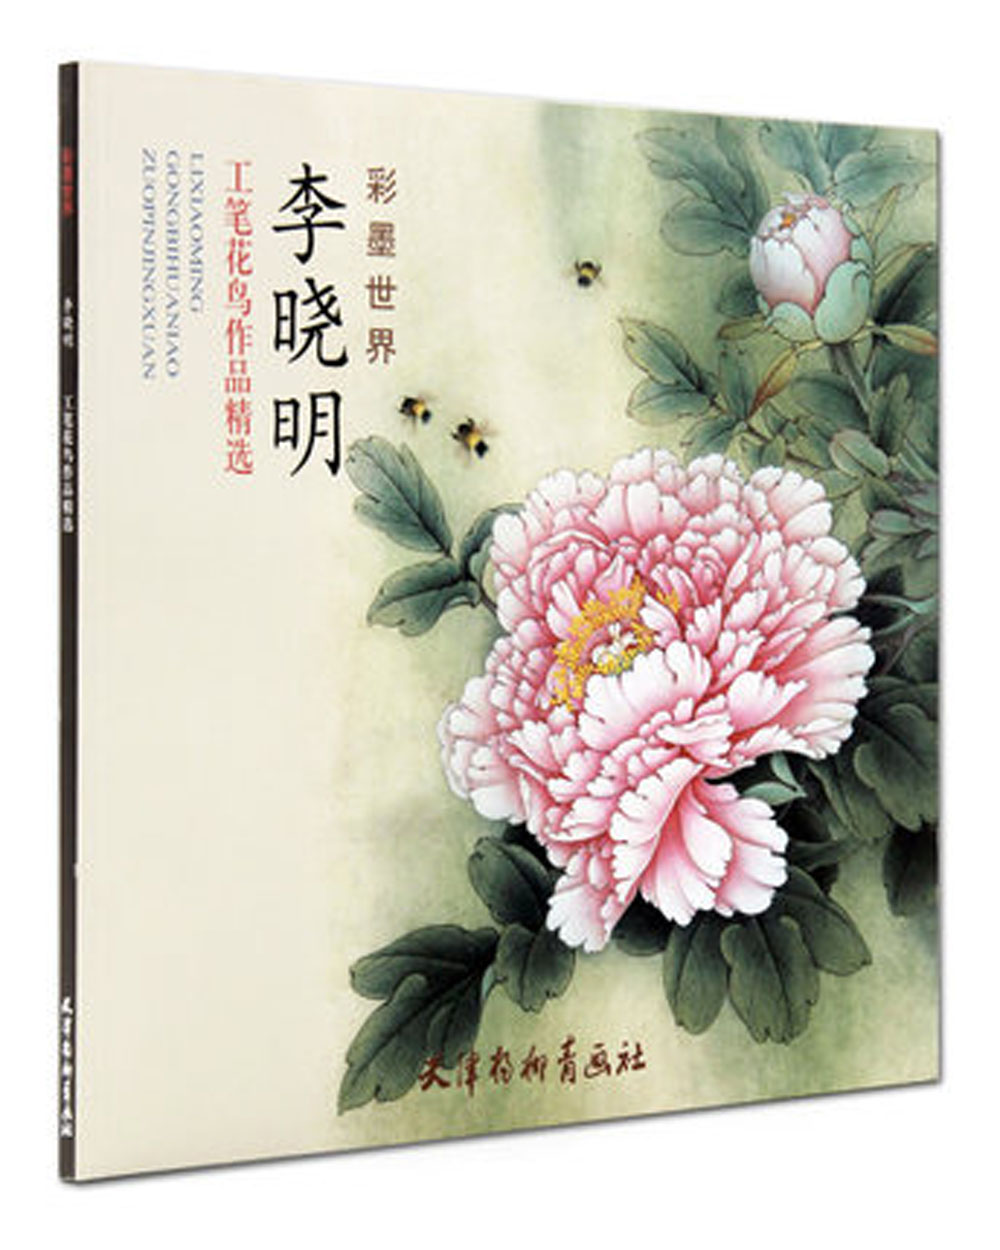 Chinese Flower Painting Art Book By Li Xiaoming Gongbi Peony Lotus Orchid